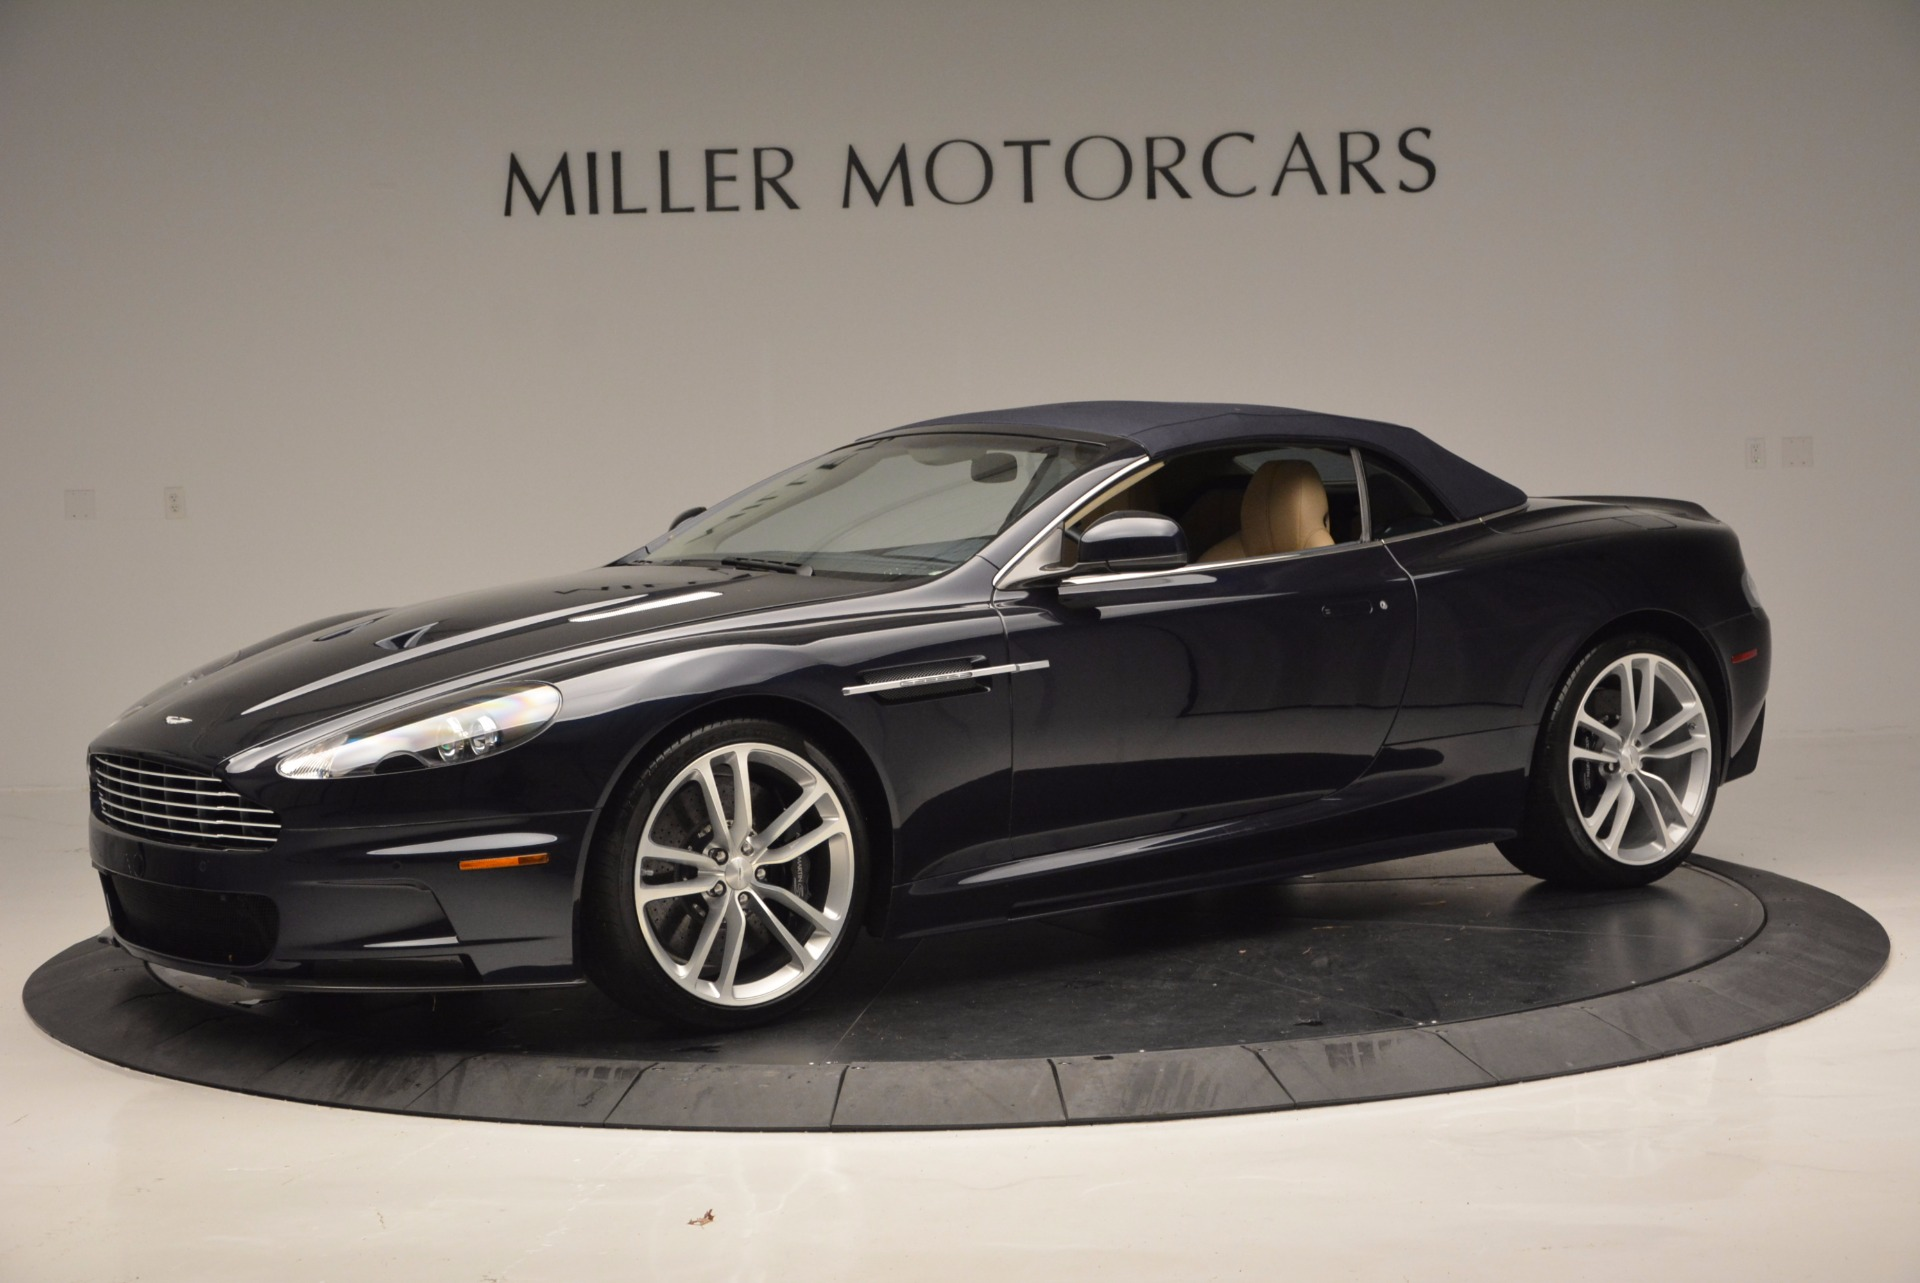 Used 2012 Aston Martin DBS Volante For Sale In Westport, CT 644_p14